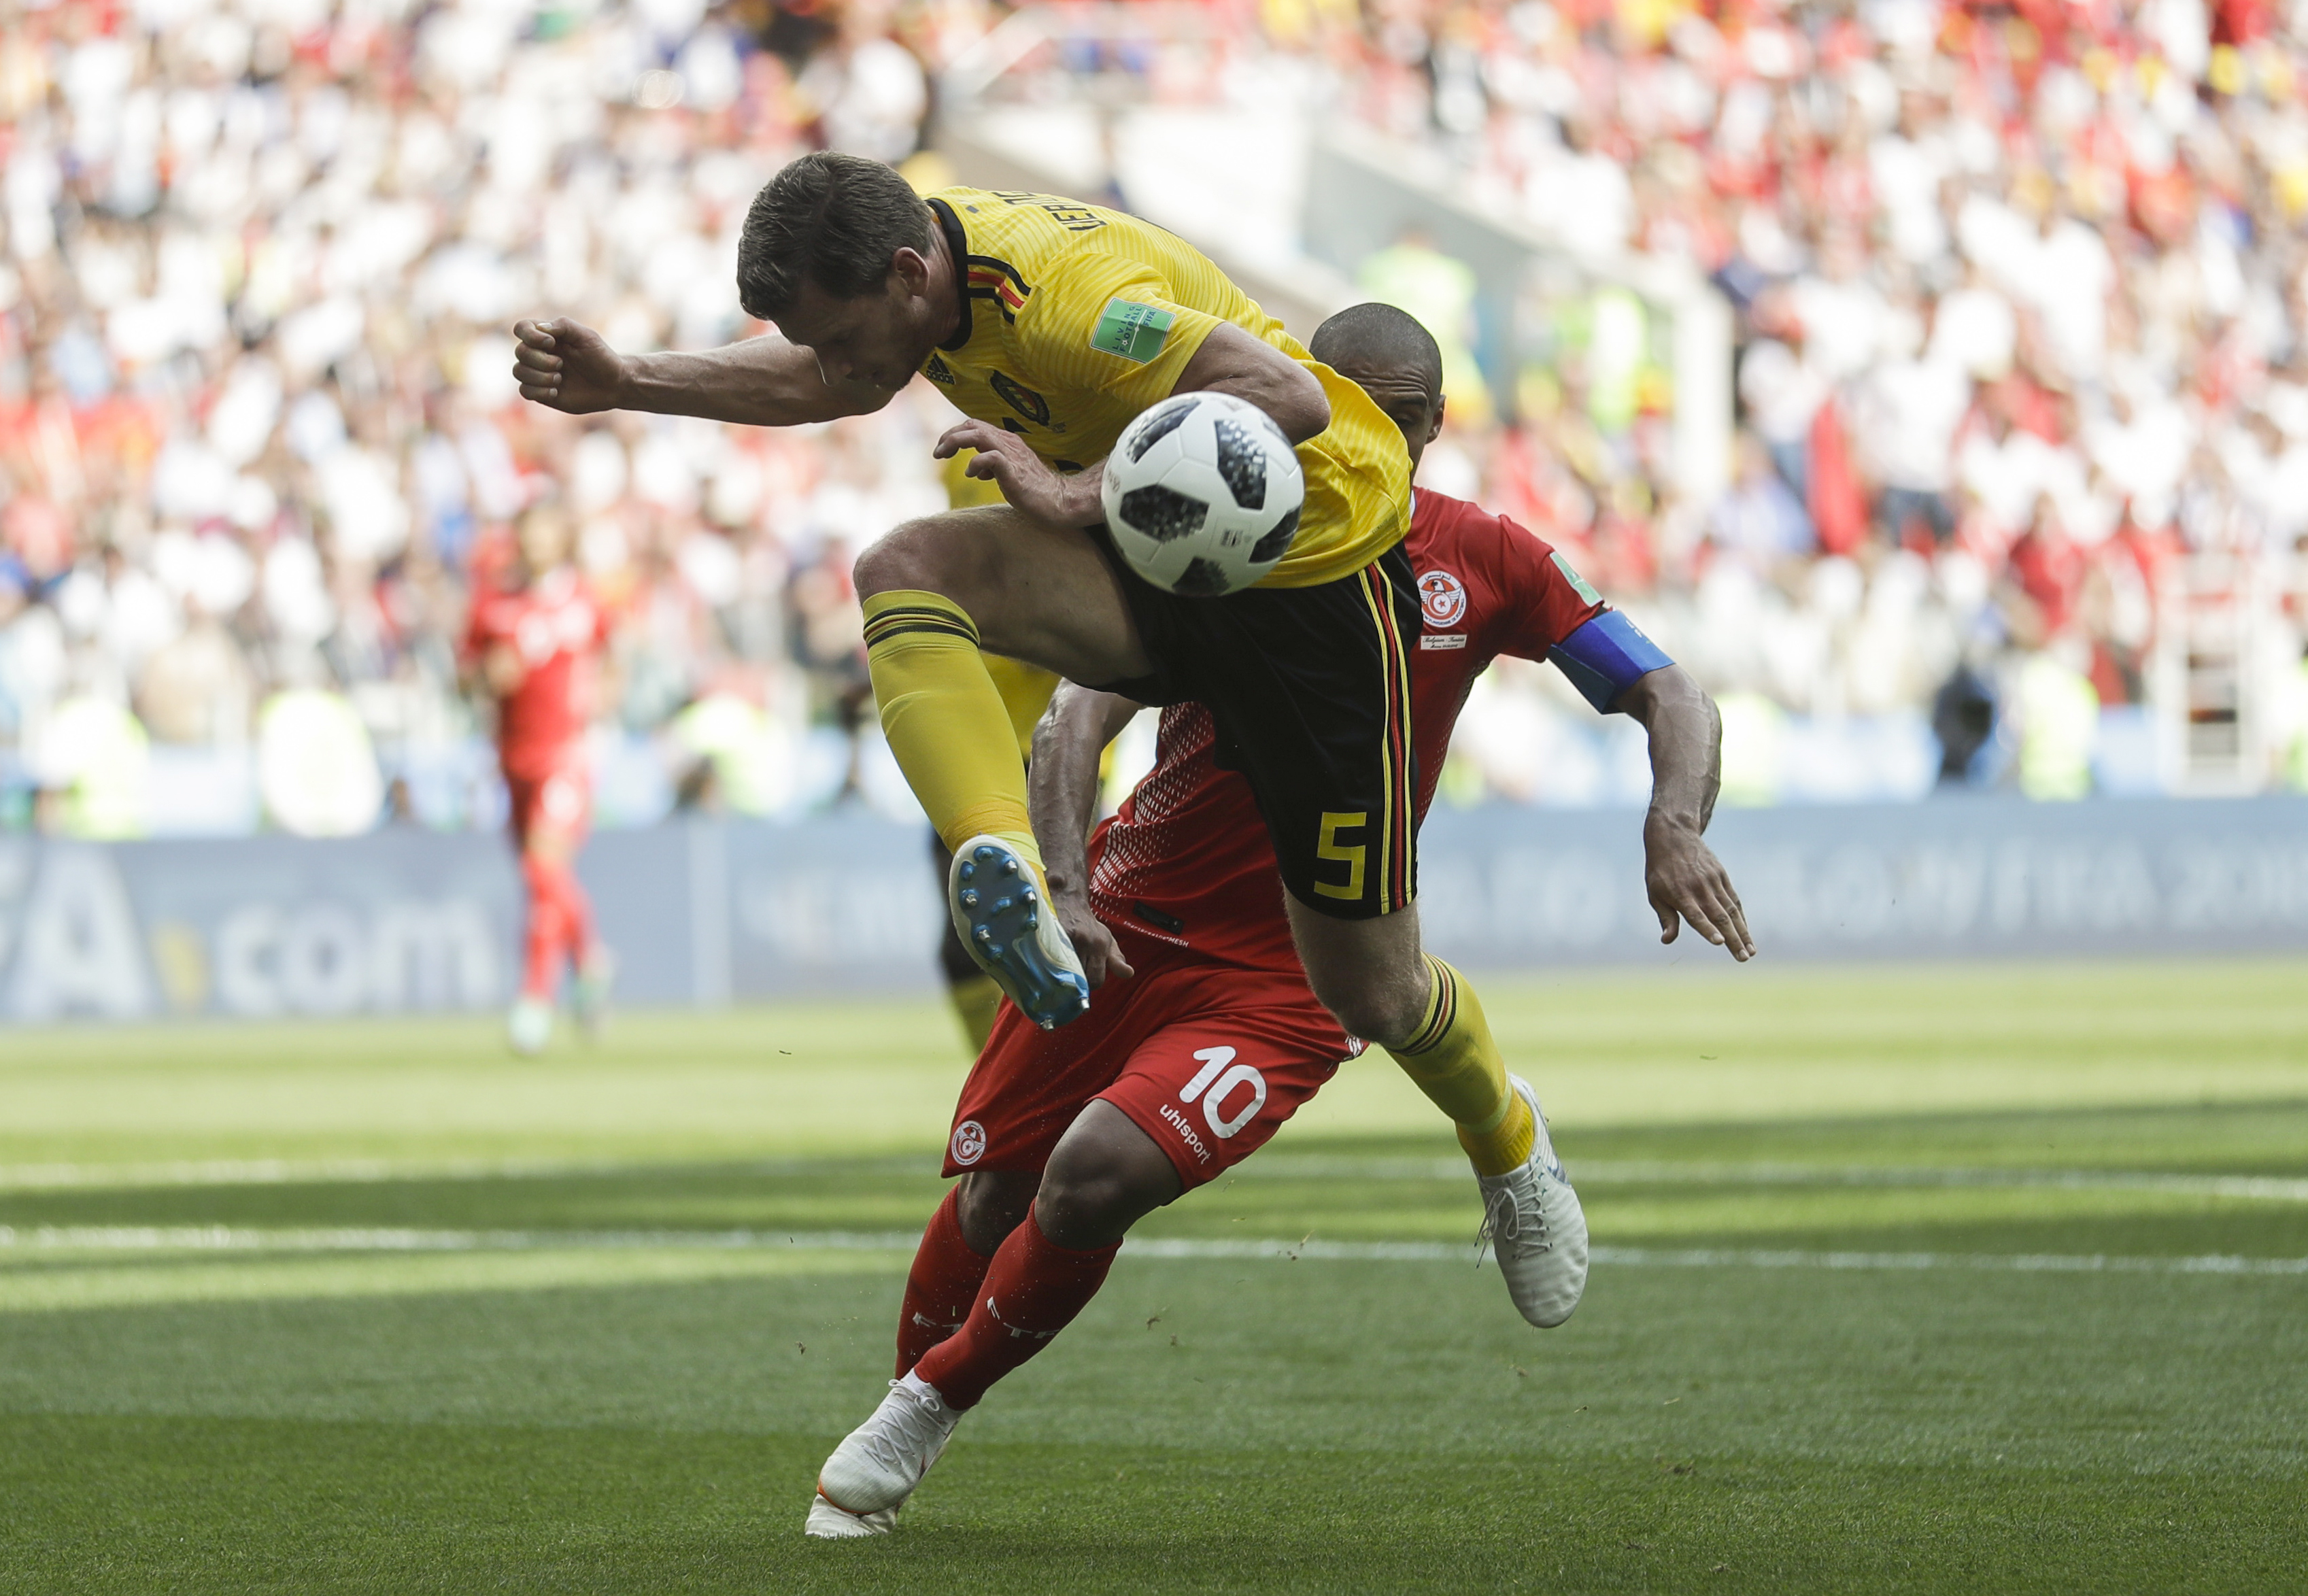 "<div class=""meta image-caption""><div class=""origin-logo origin-image none""><span>none</span></div><span class=""caption-text"">Belgium's Jan Vertonghen, top, and Tunisia's Wahbi Khazri challenge for the ball during the group G match in the Spartak Stadium in Moscow, Russia, Saturday, June 23, 2018. (Matthias Schrader/AP Photo)</span></div>"